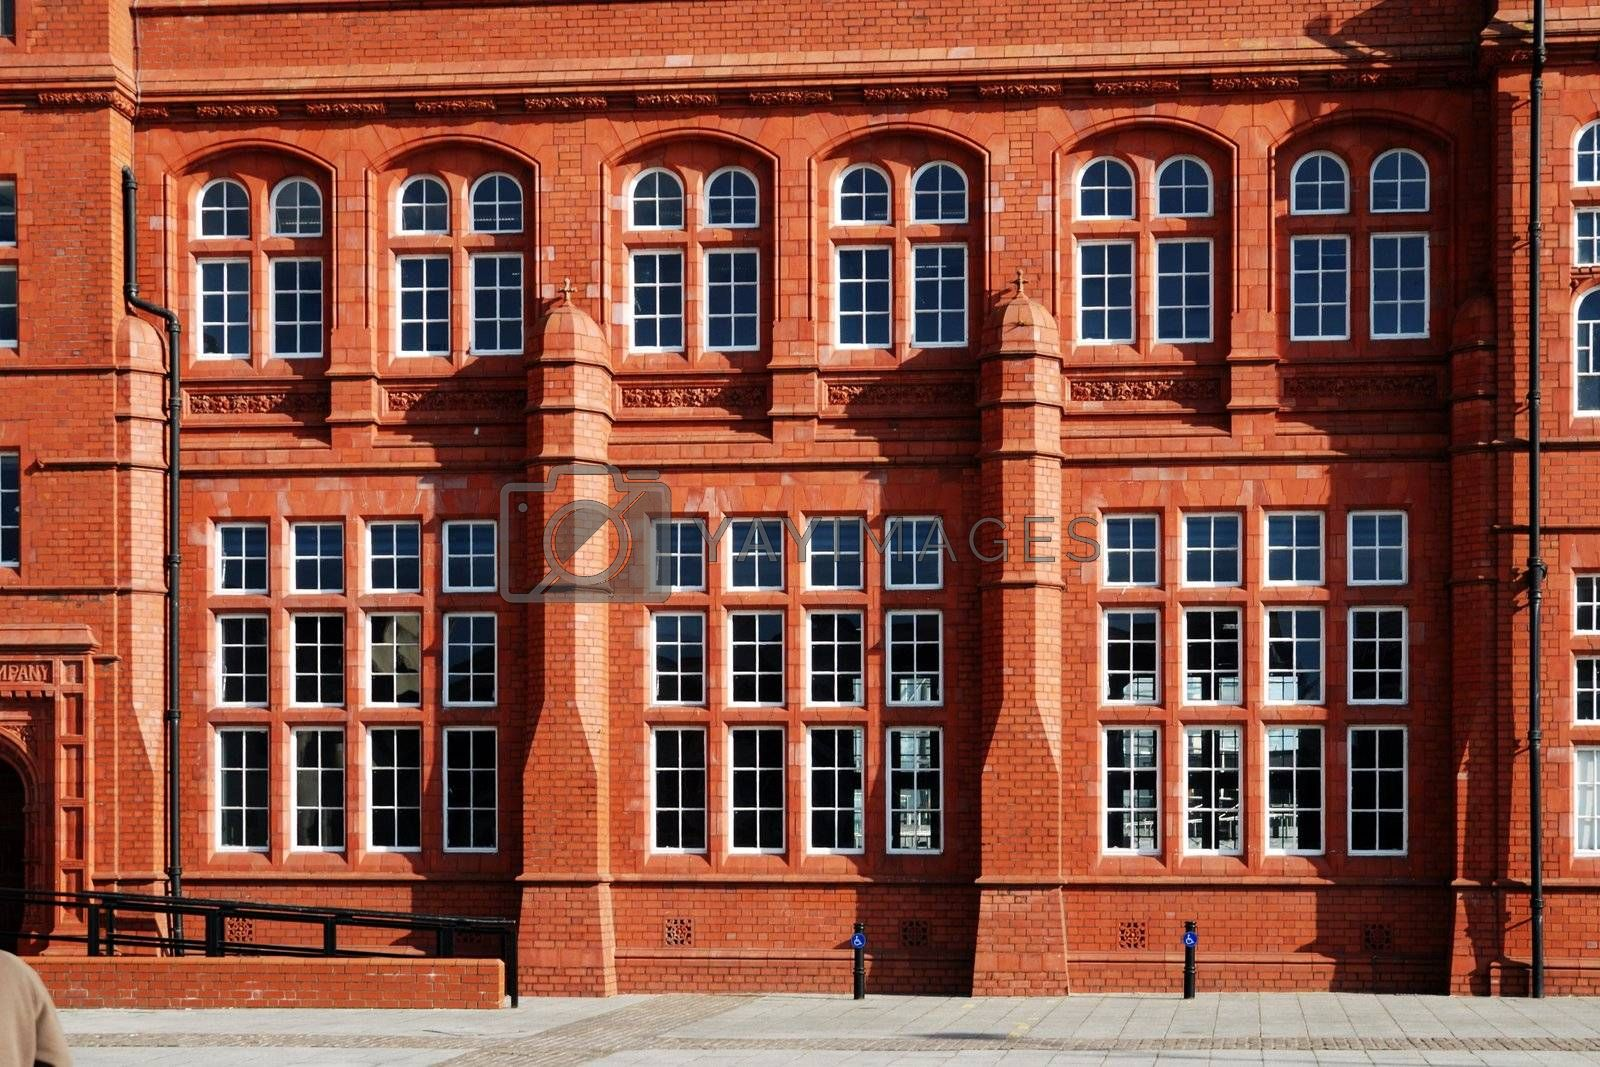 wall of red historical building in cardiff bay with windows